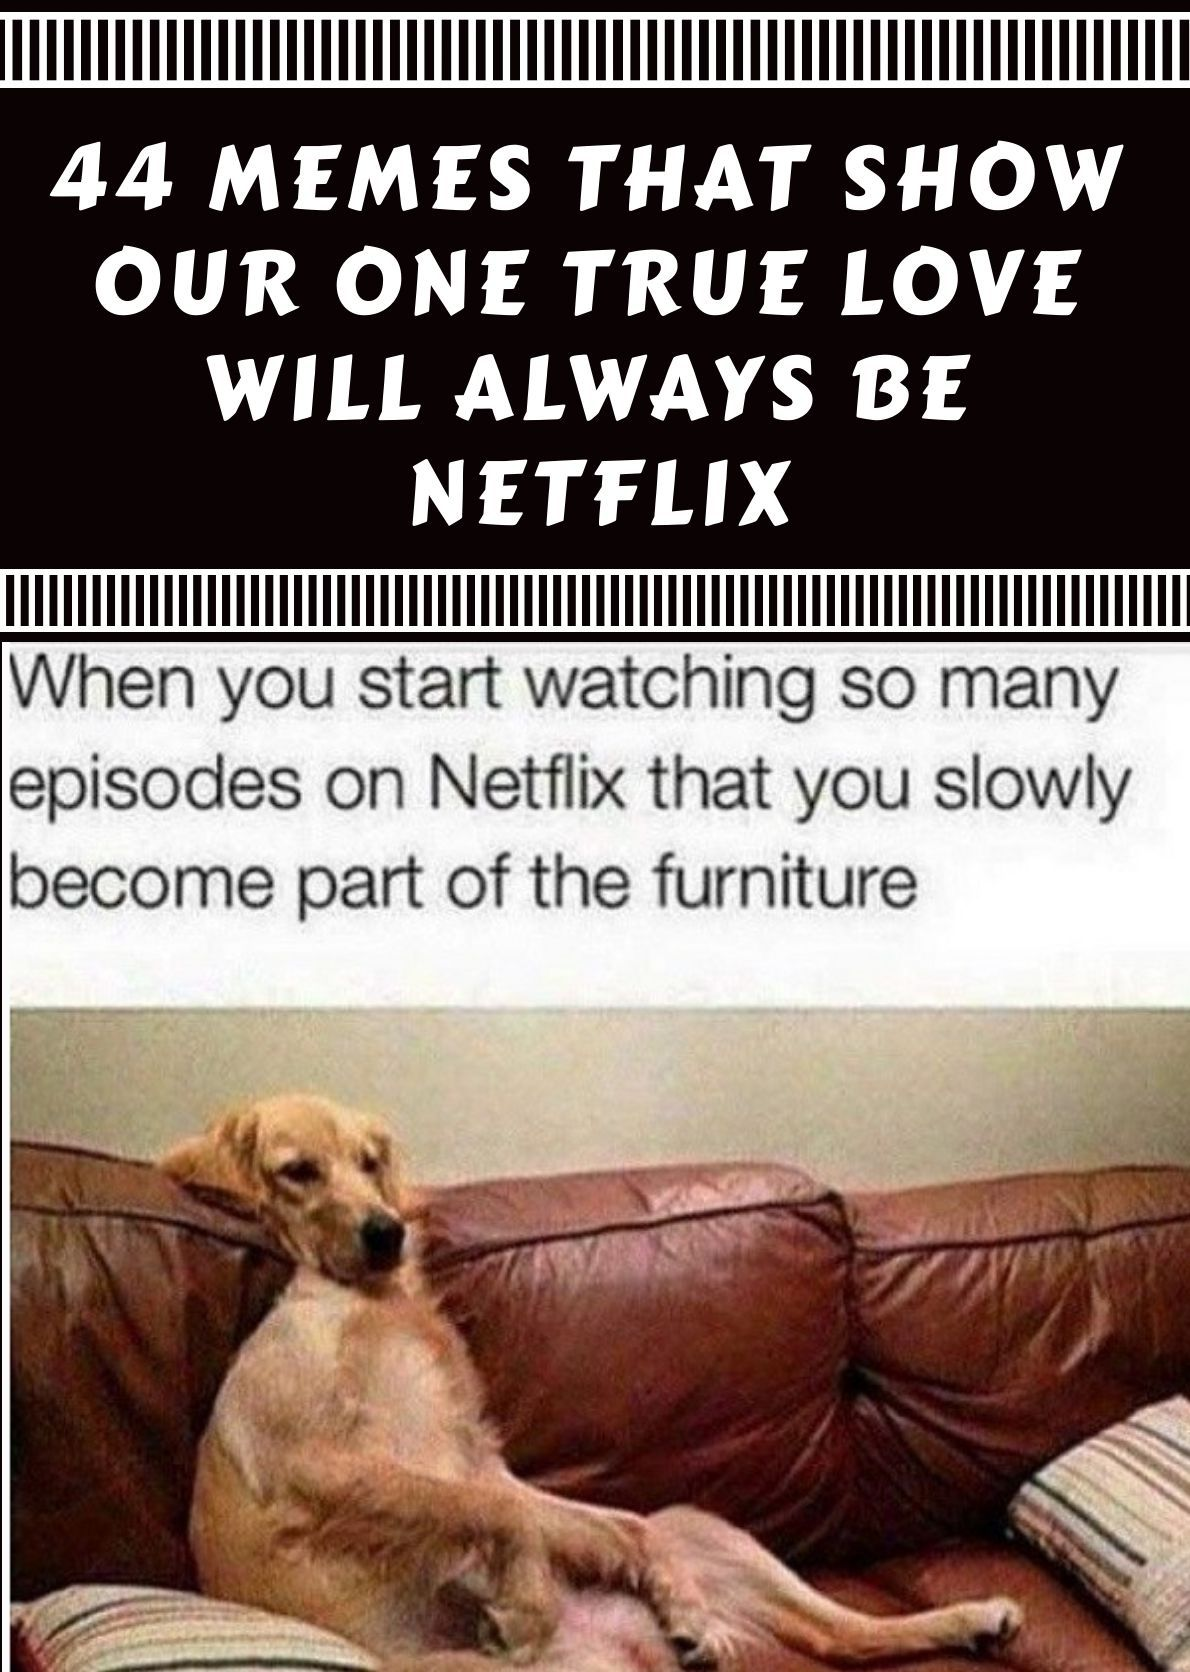 44 Memes That Show Our One True Love Will Always Be Netflix Wtf Lol Haha Omg Intrest Wtf Lol Haha Omg Intrest Funny T Netflix Tv Memes Netflix Humor